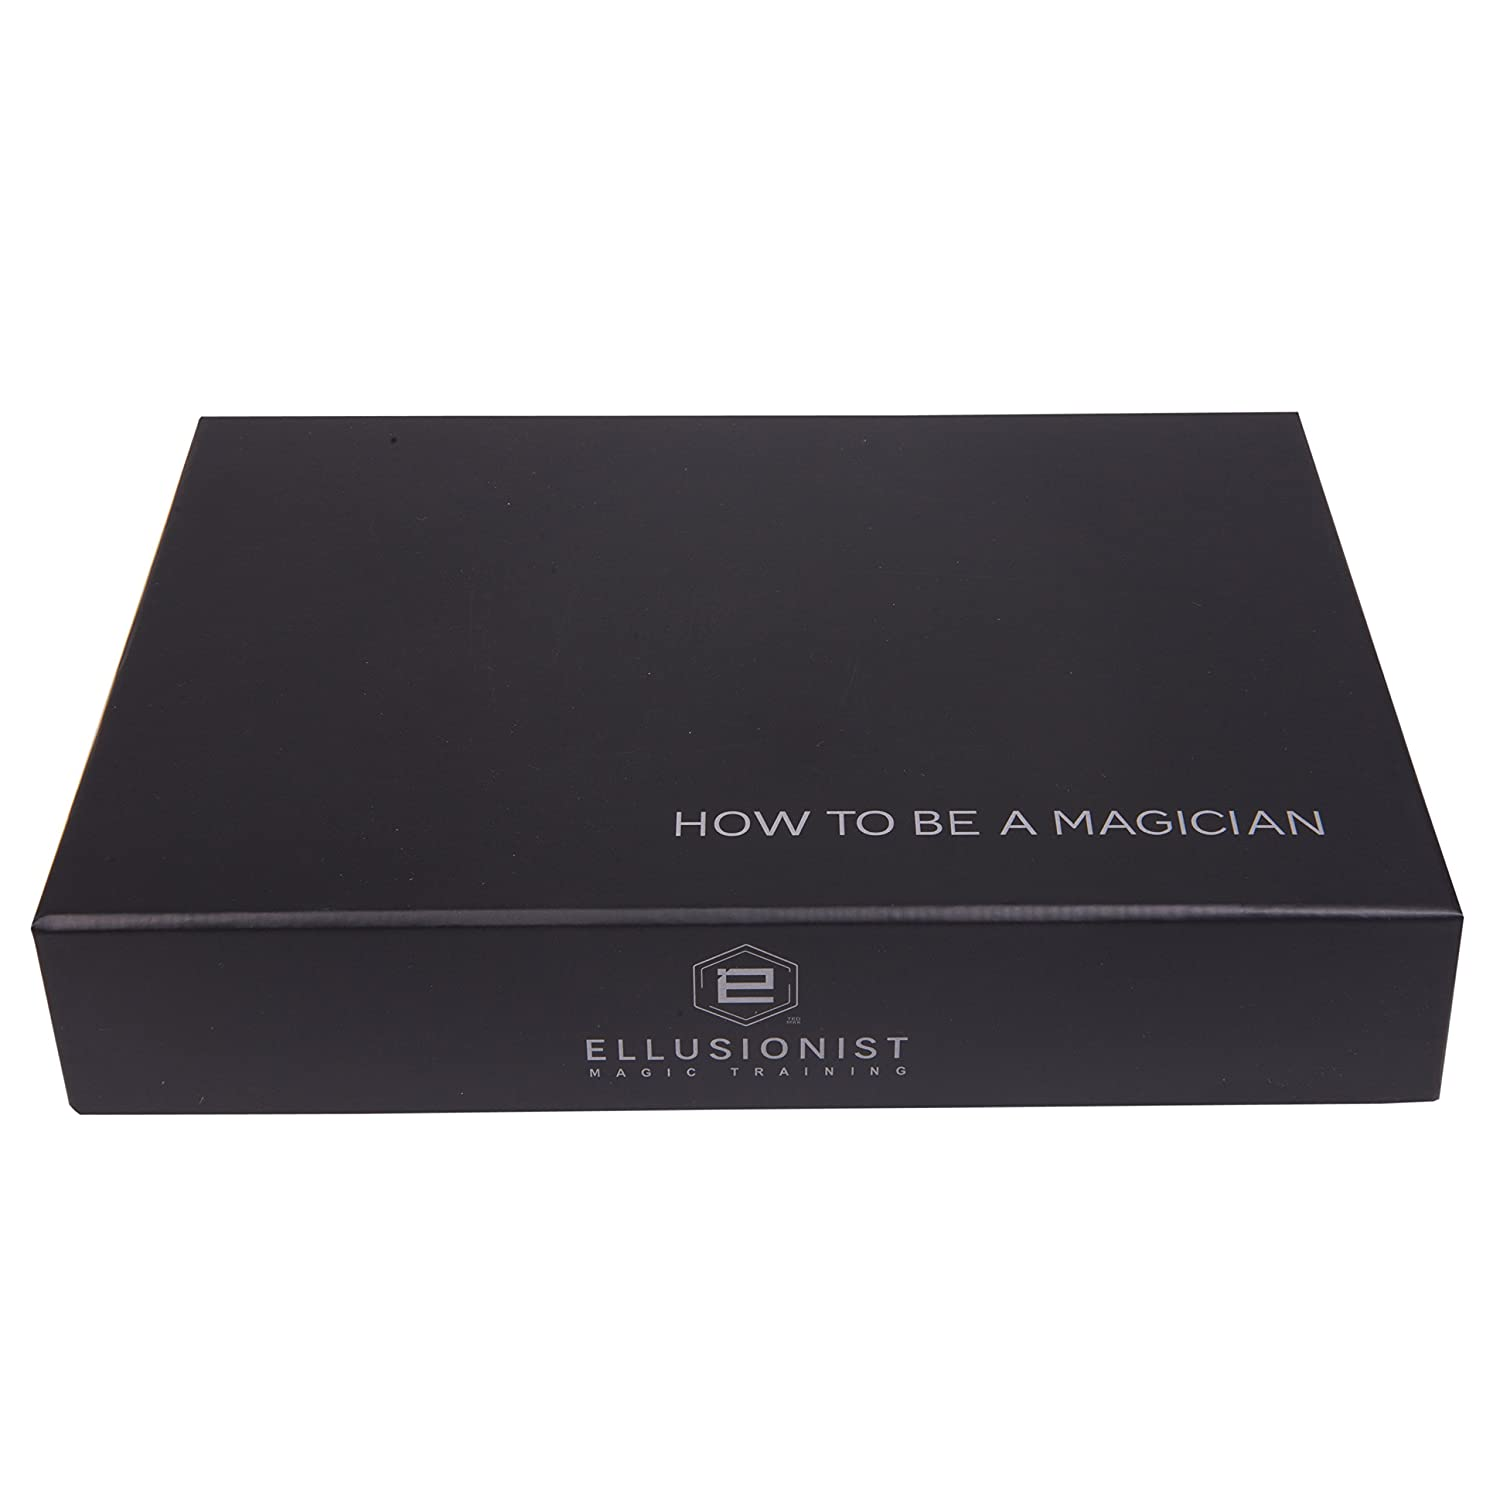 Ellusionist How To Be A Magician by Magic Trick Set for Beginners with Video